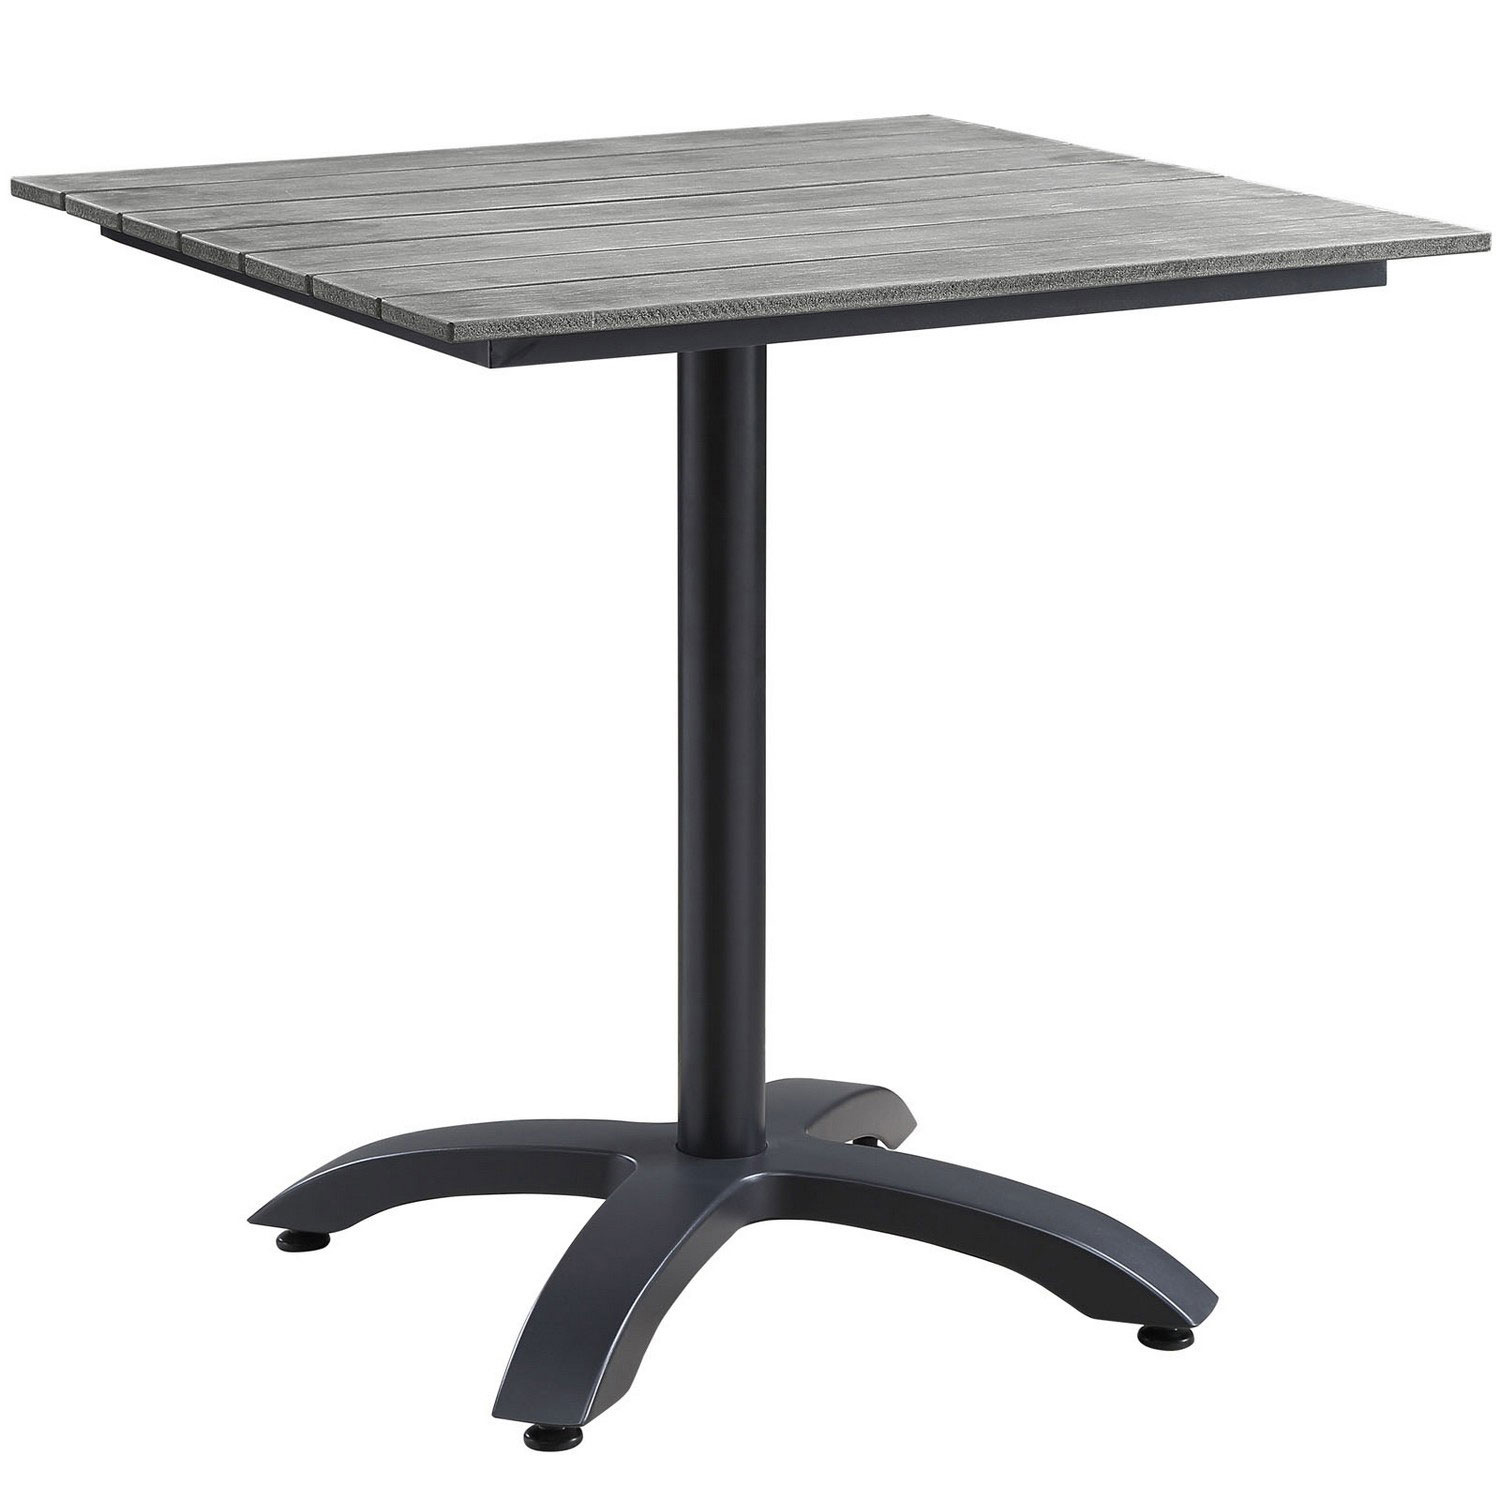 Modway Maine 28 Outdoor Patio Dining Table - Brown/Gray